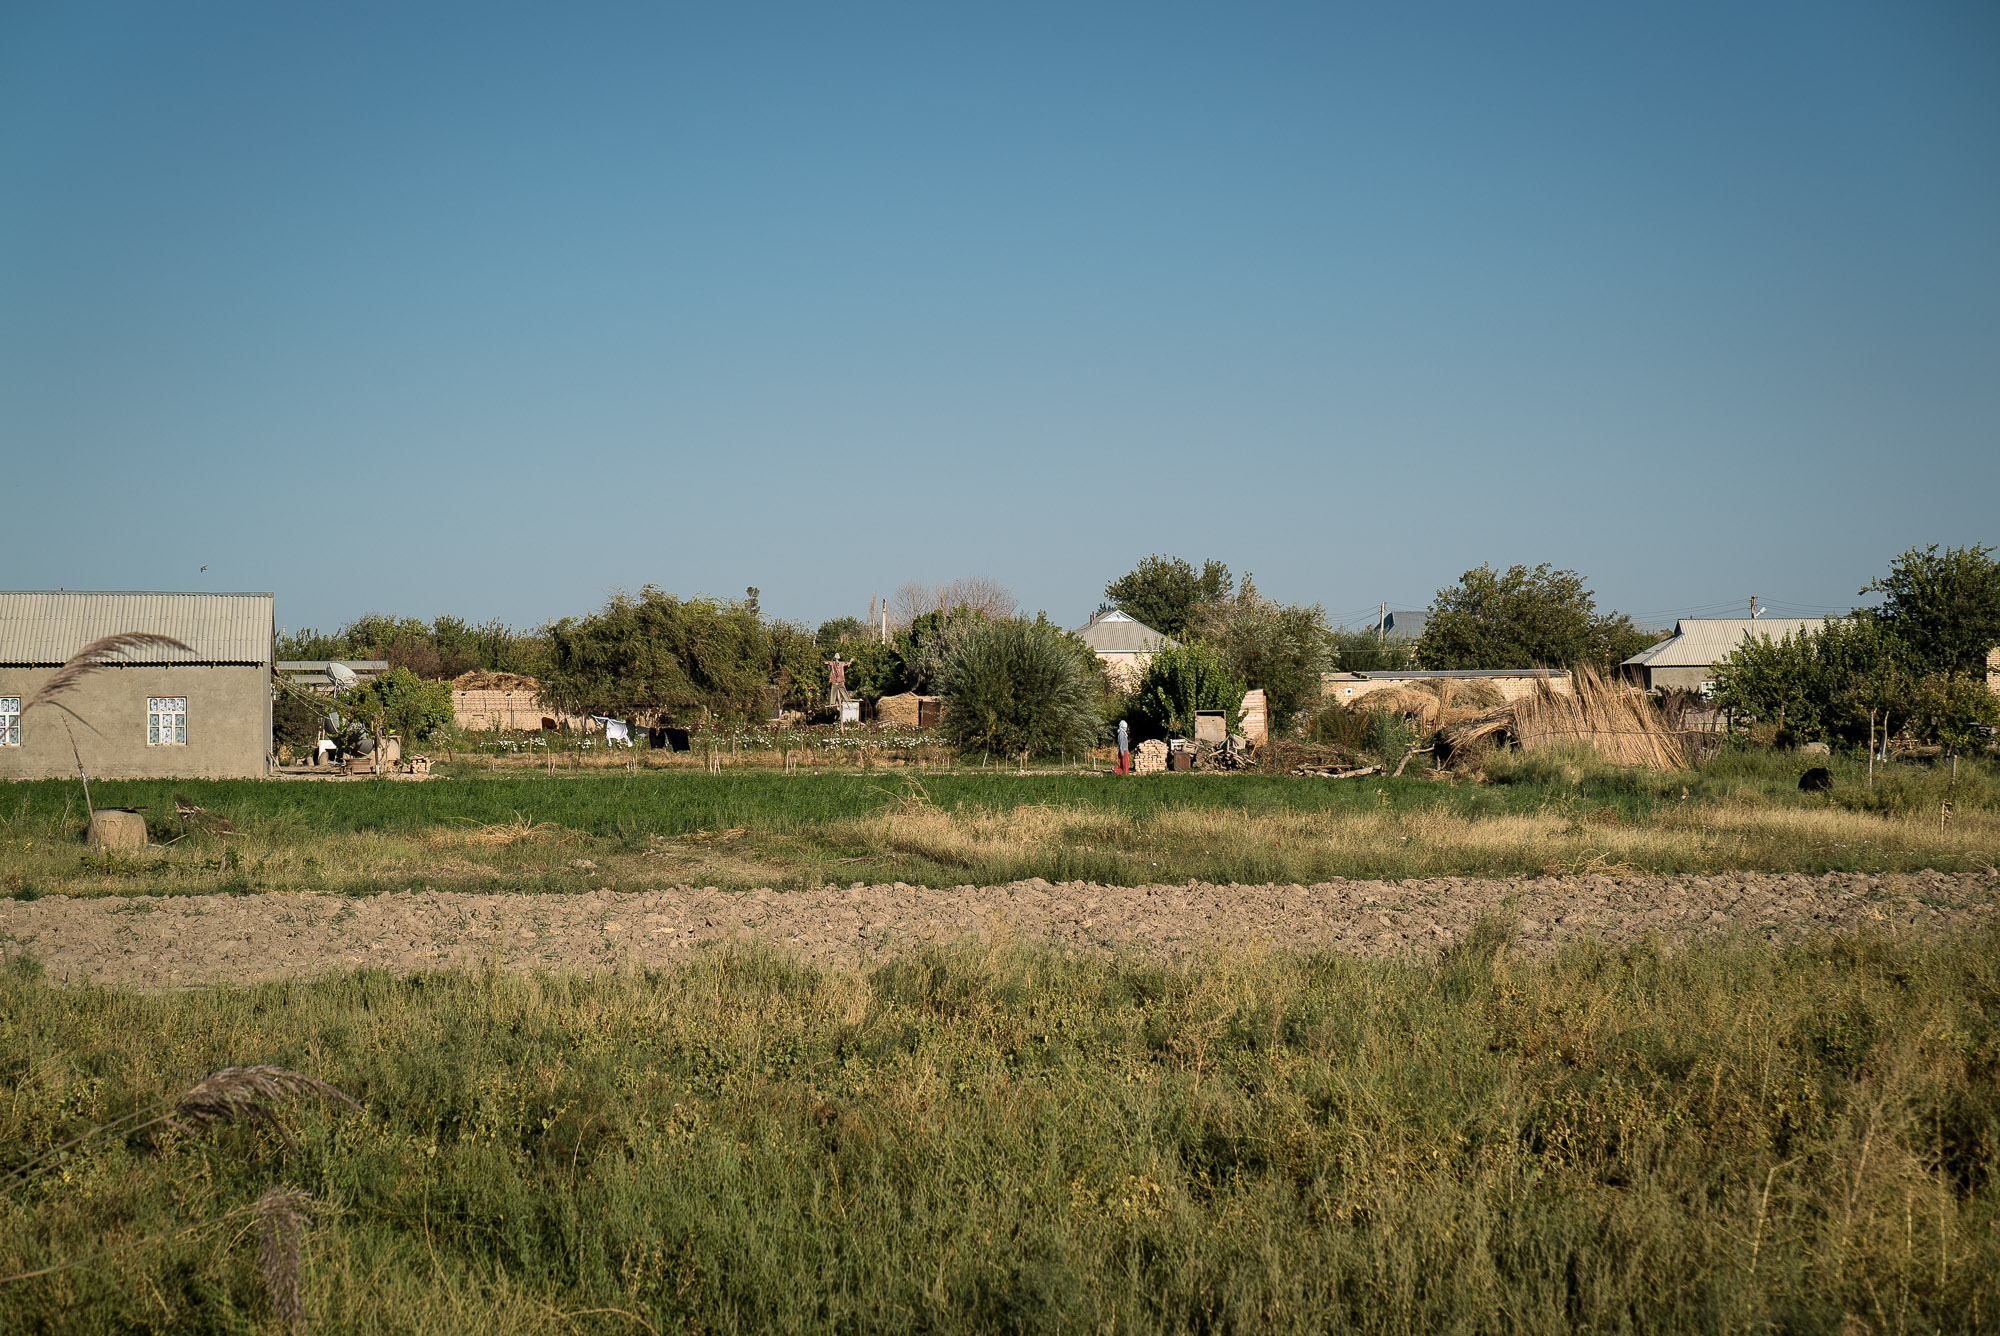 village in Turkmenistan